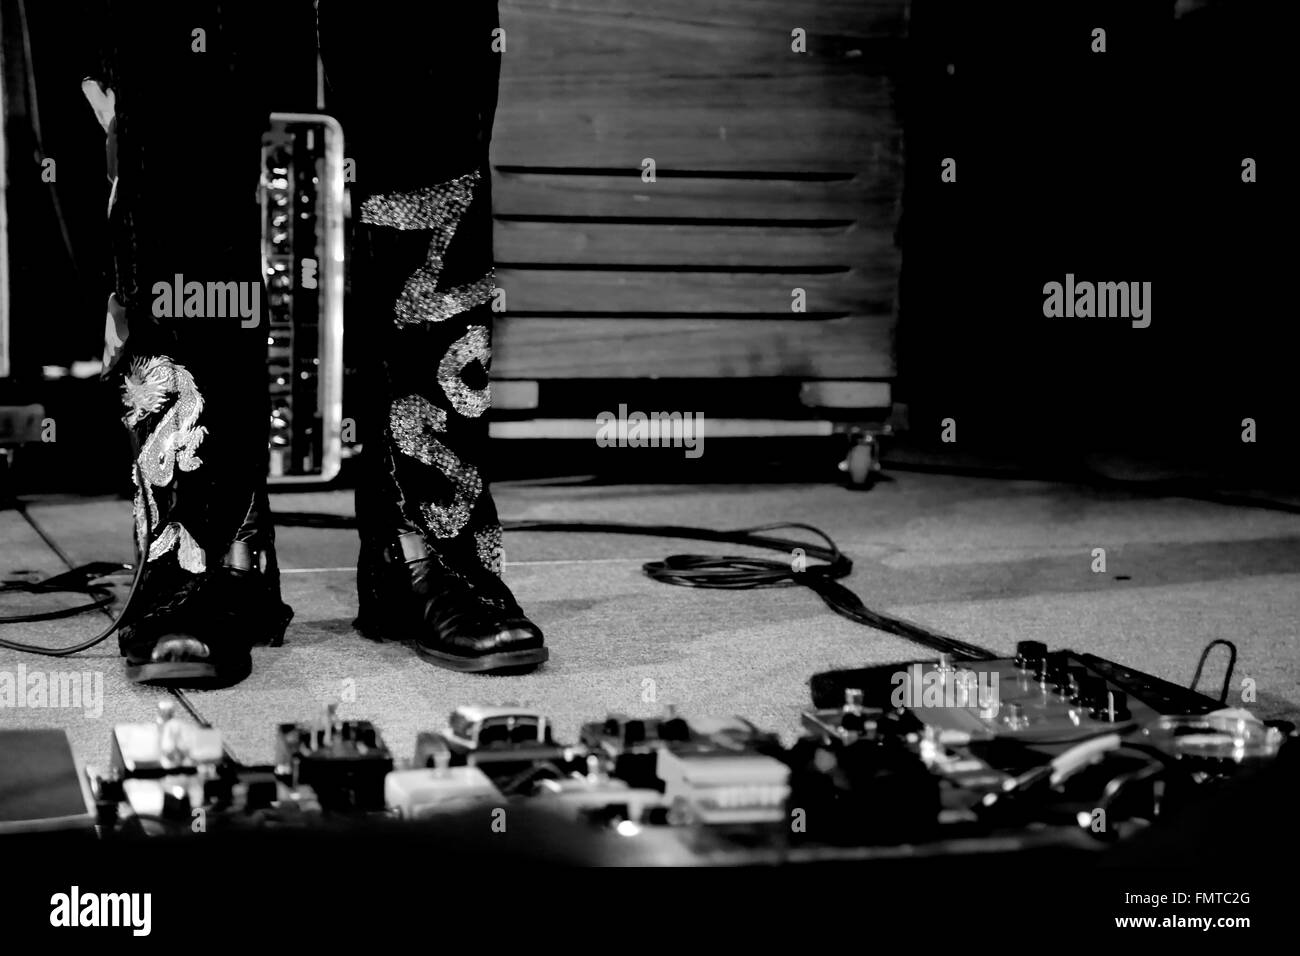 Guitar Pedals On Concert Stage In Black And White With Feet